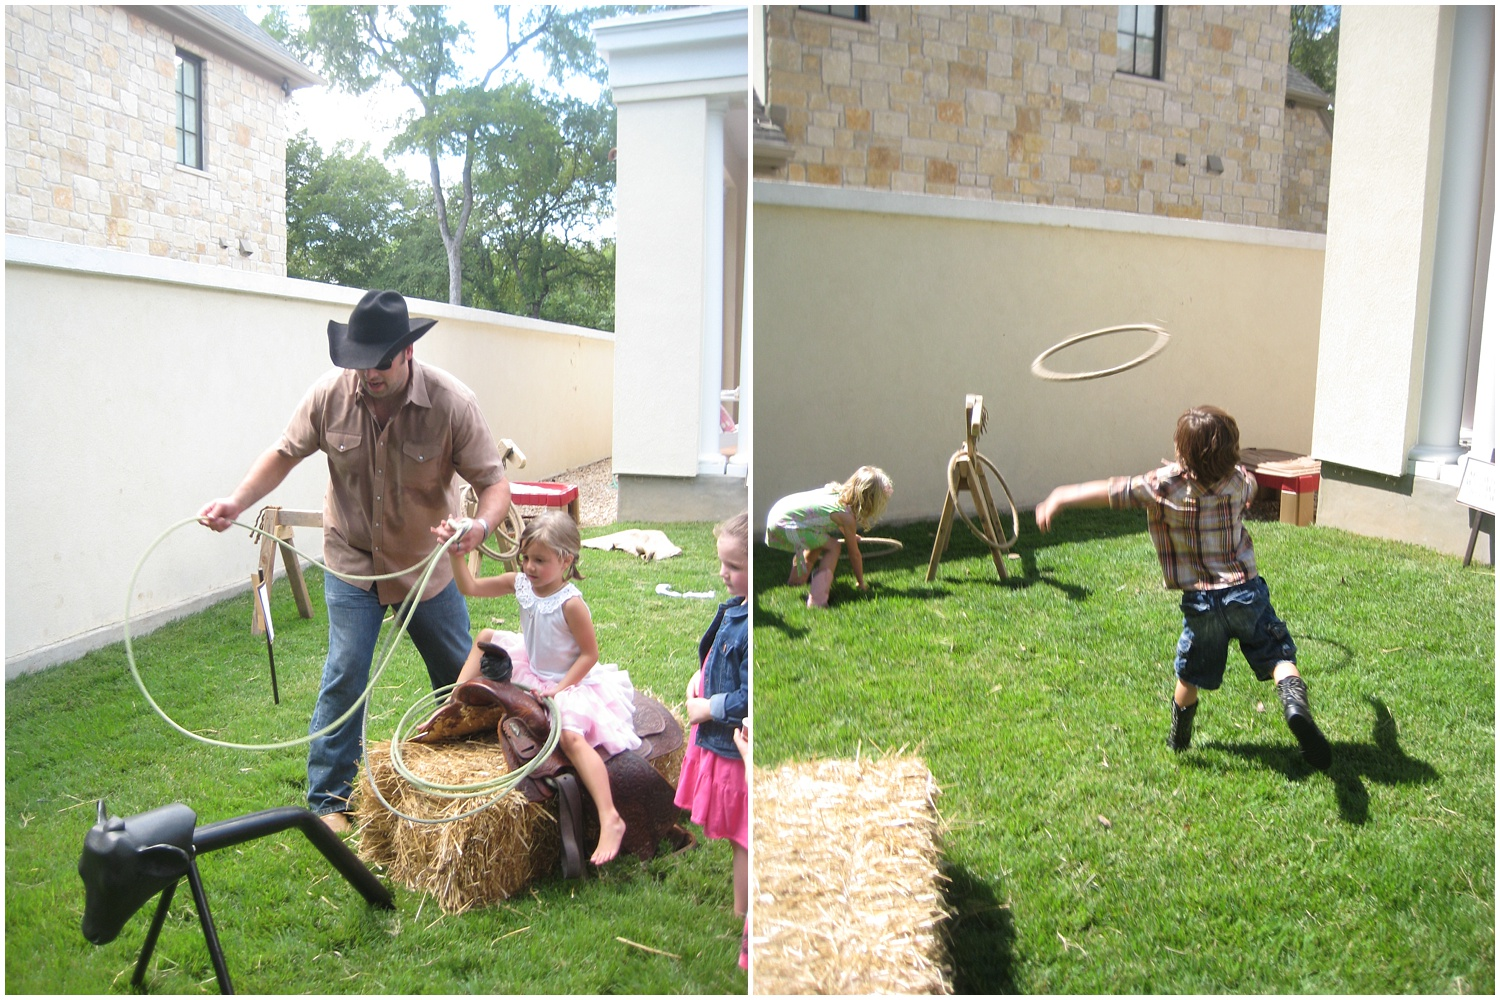 Cowboy_themedchildrensparty_AustinTX_0125.jpg